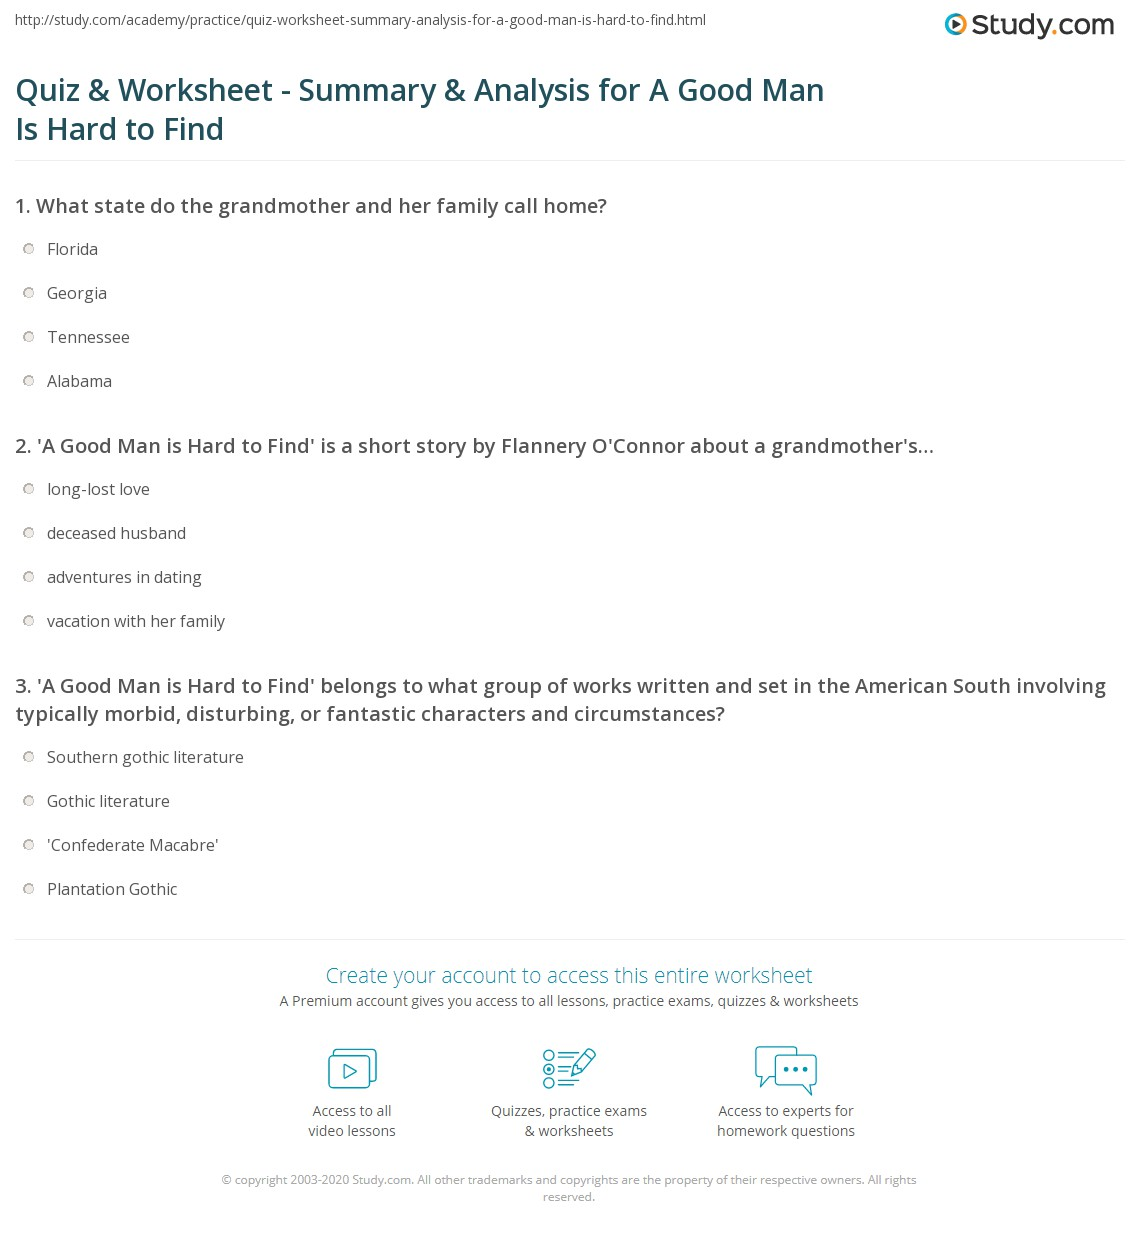 flannery o connor essay teaching flannery o connor celebrating the  quiz worksheet summary analysis for a good man is hard to print a good man is